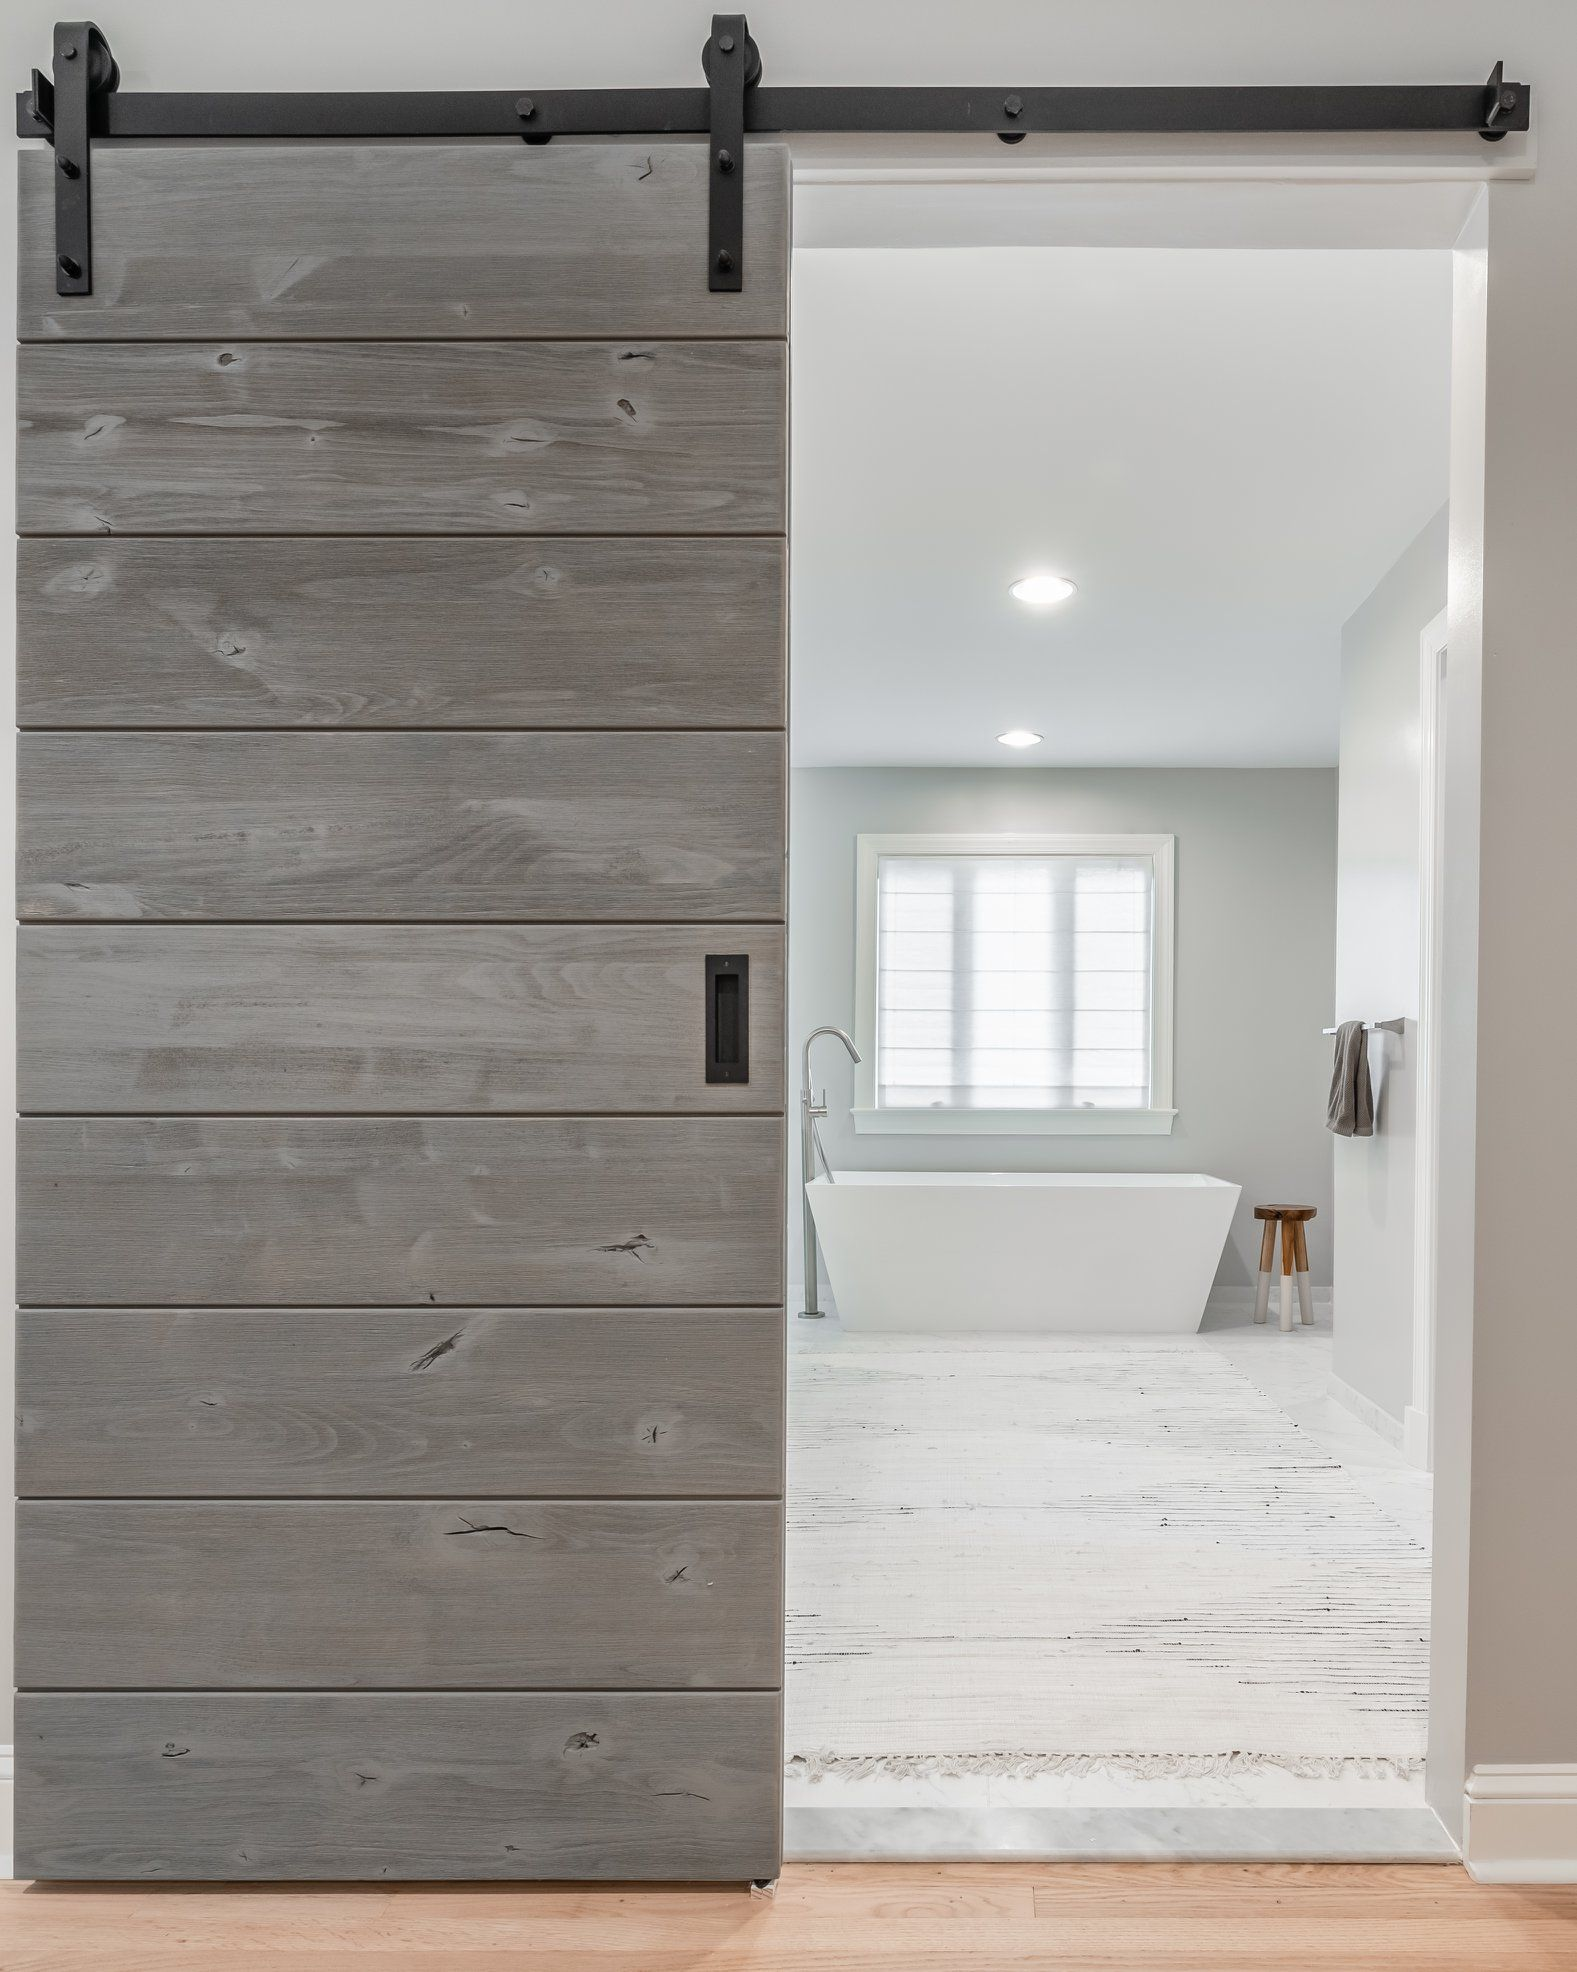 A Rustic Alder Door In A Driftwood Grey Finish On Black Classic Sliding Hardware From Real Carriage Door Sliding Bedroom Doors Rustic Doors Barn Style Doors